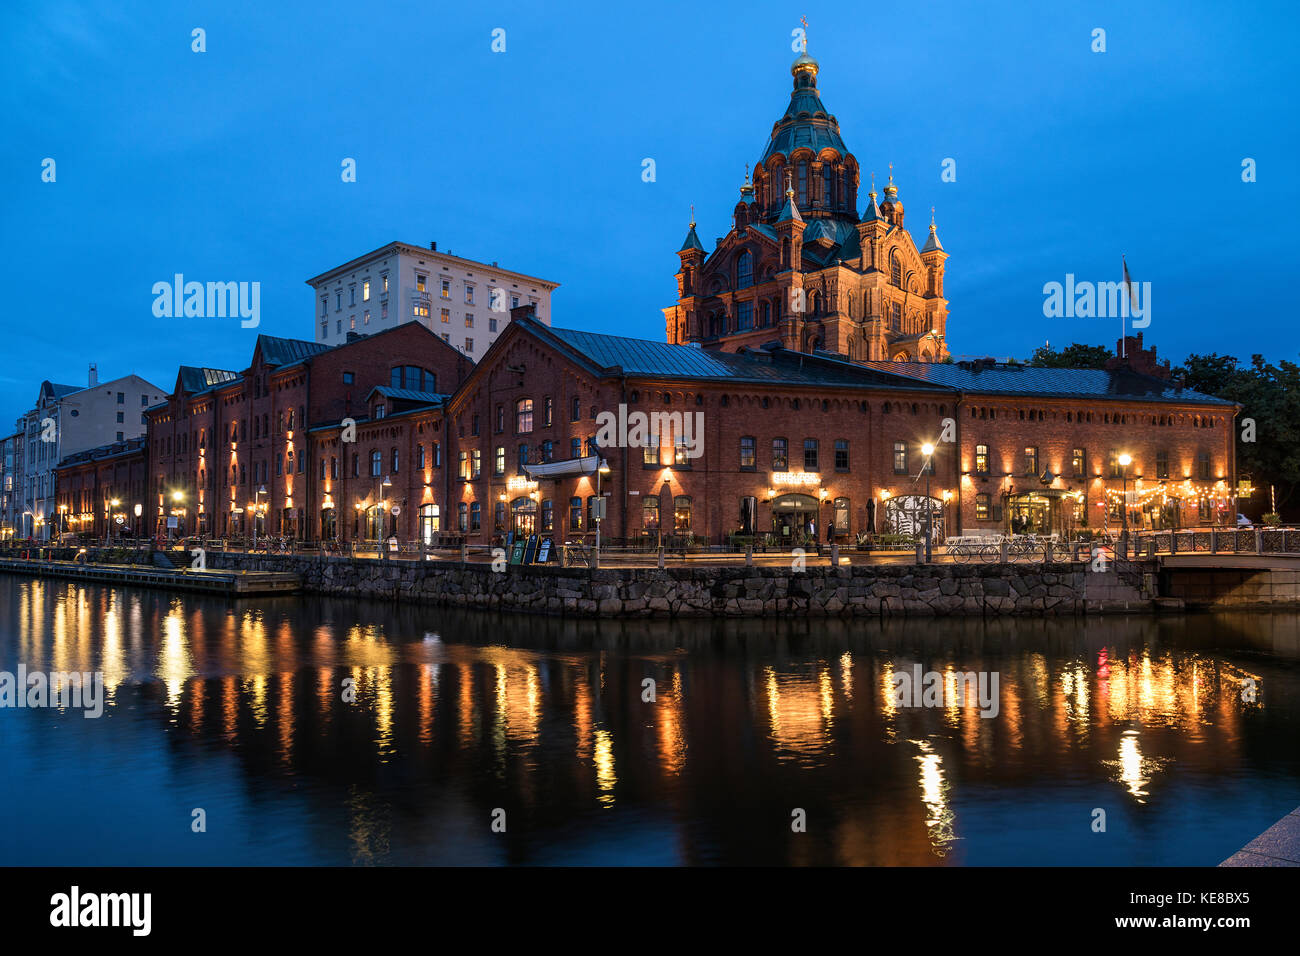 Uspenski Cathedral and Katajanokka waterfront in the city of Helsinki in Finland. - Stock Image